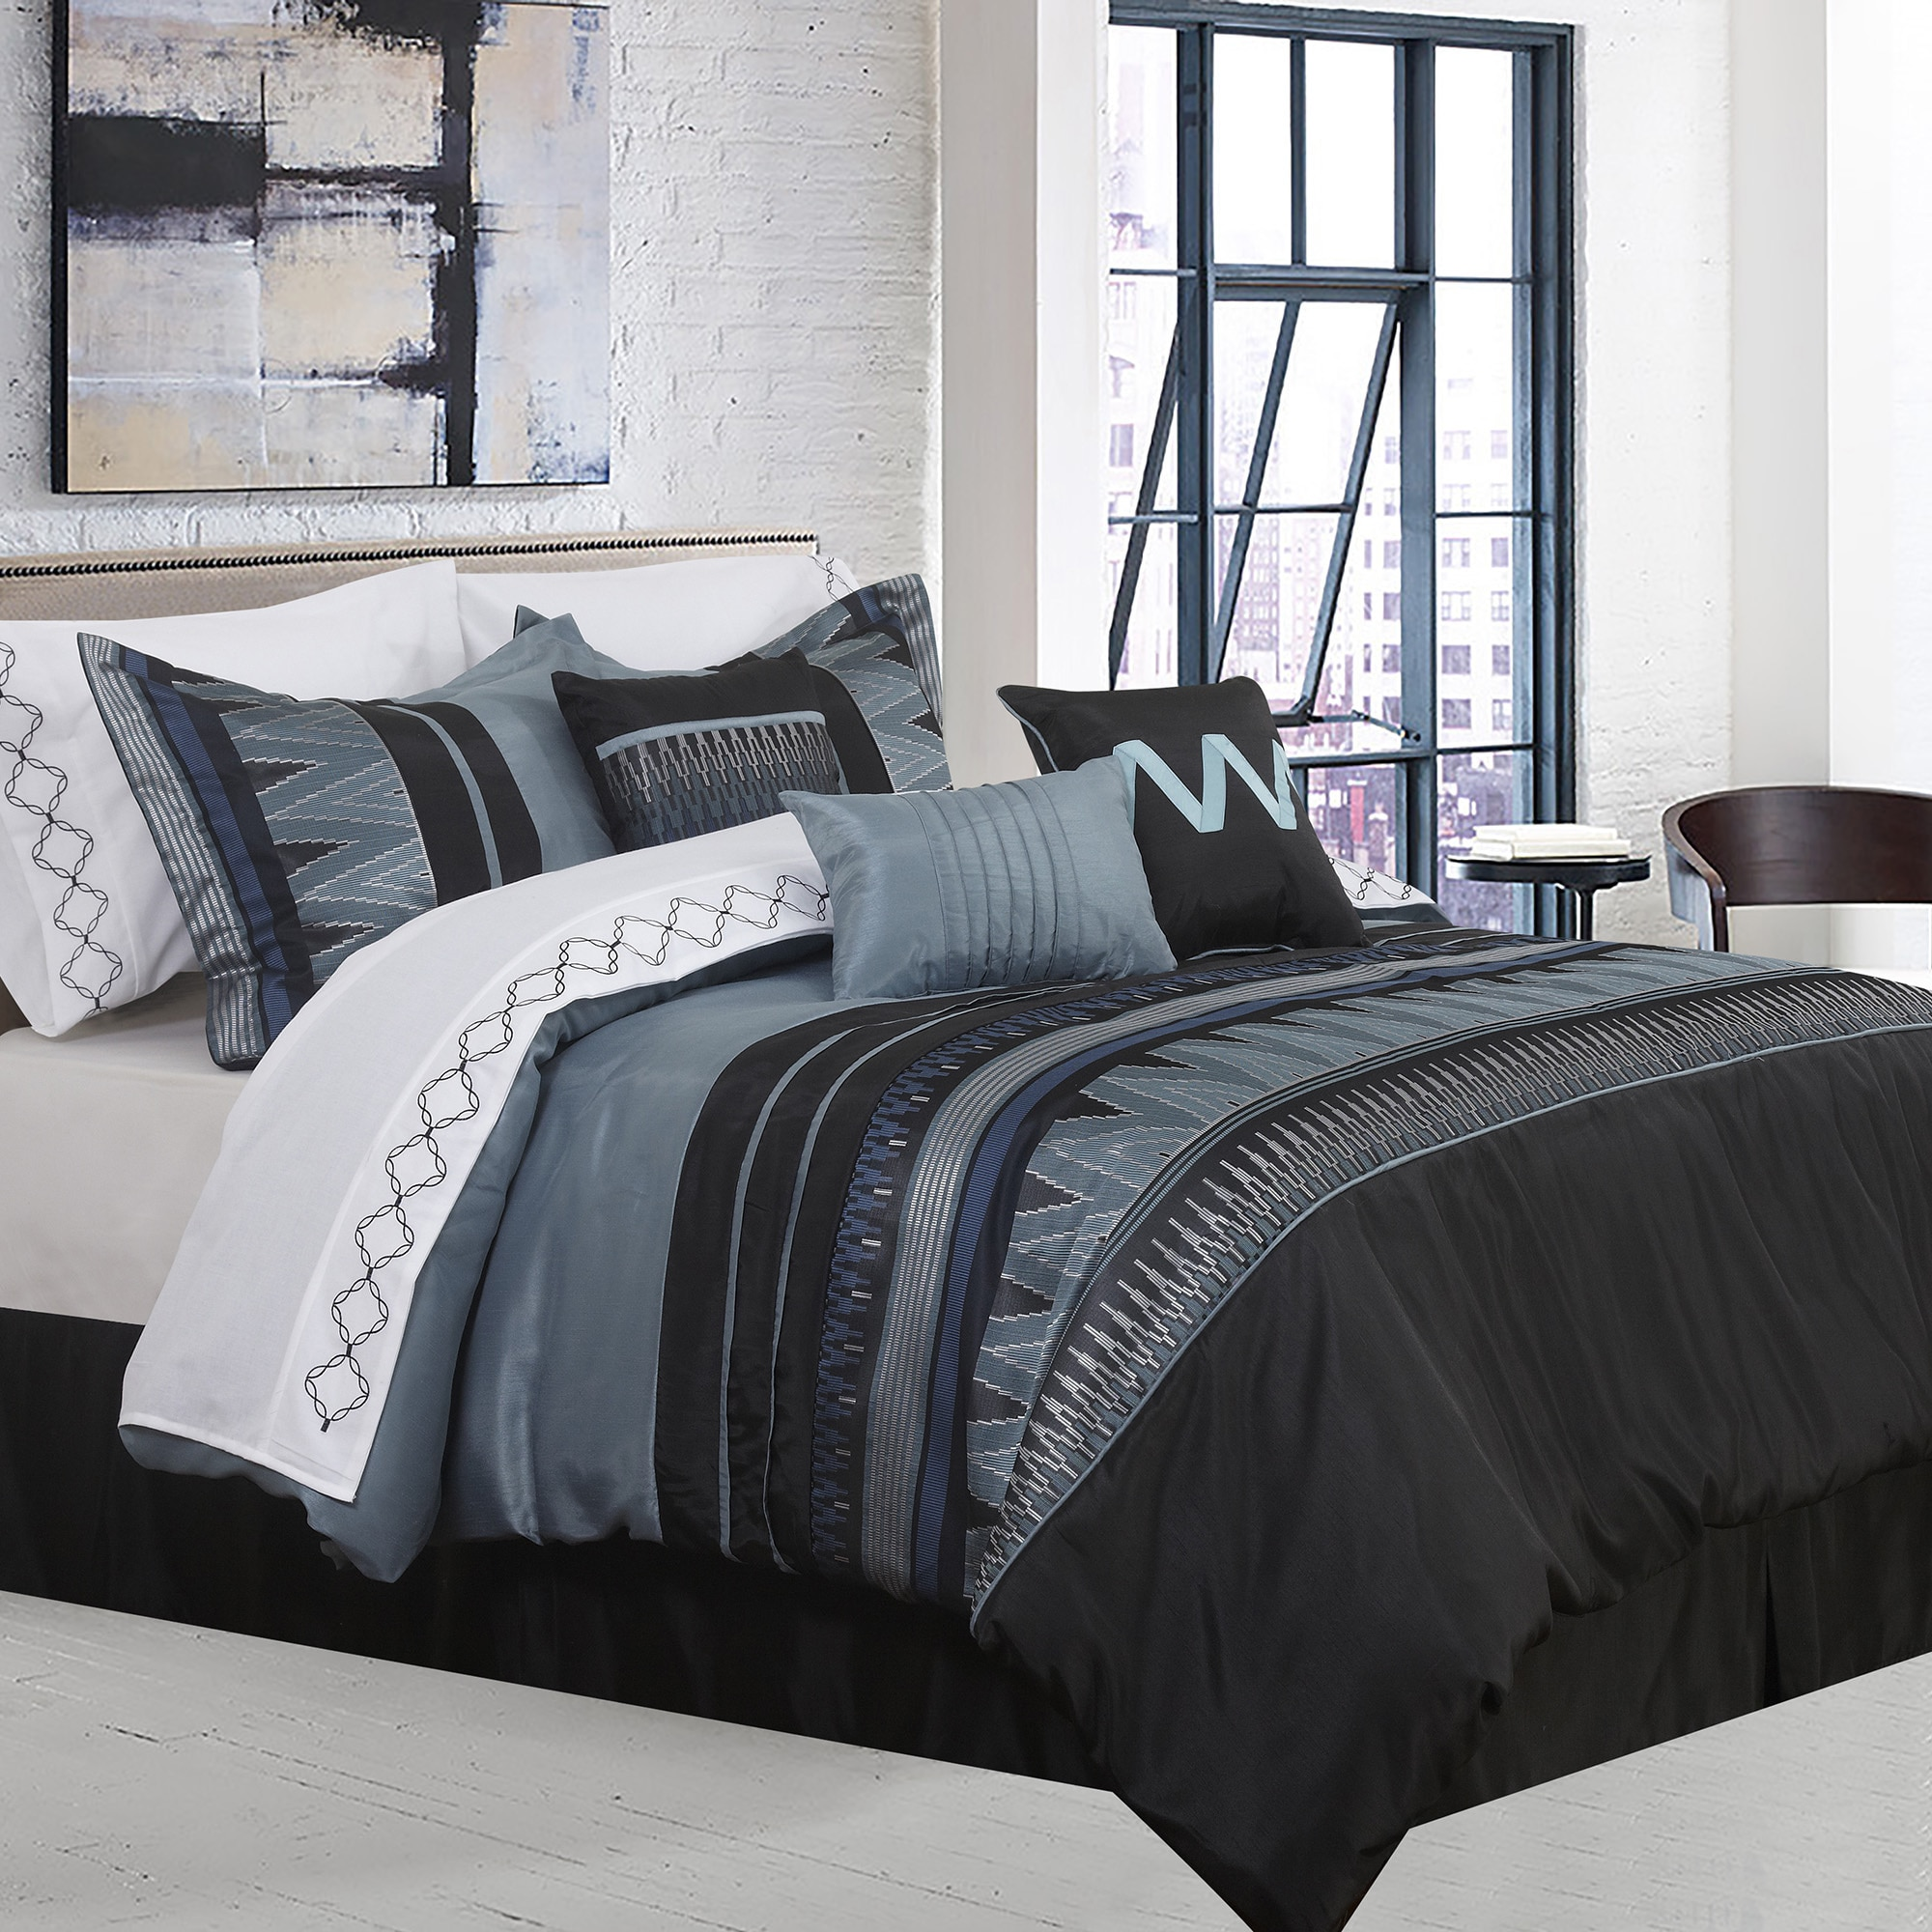 Vanguard 7 Piece Grey And Black Comforter Set On Sale Overstock 14720152